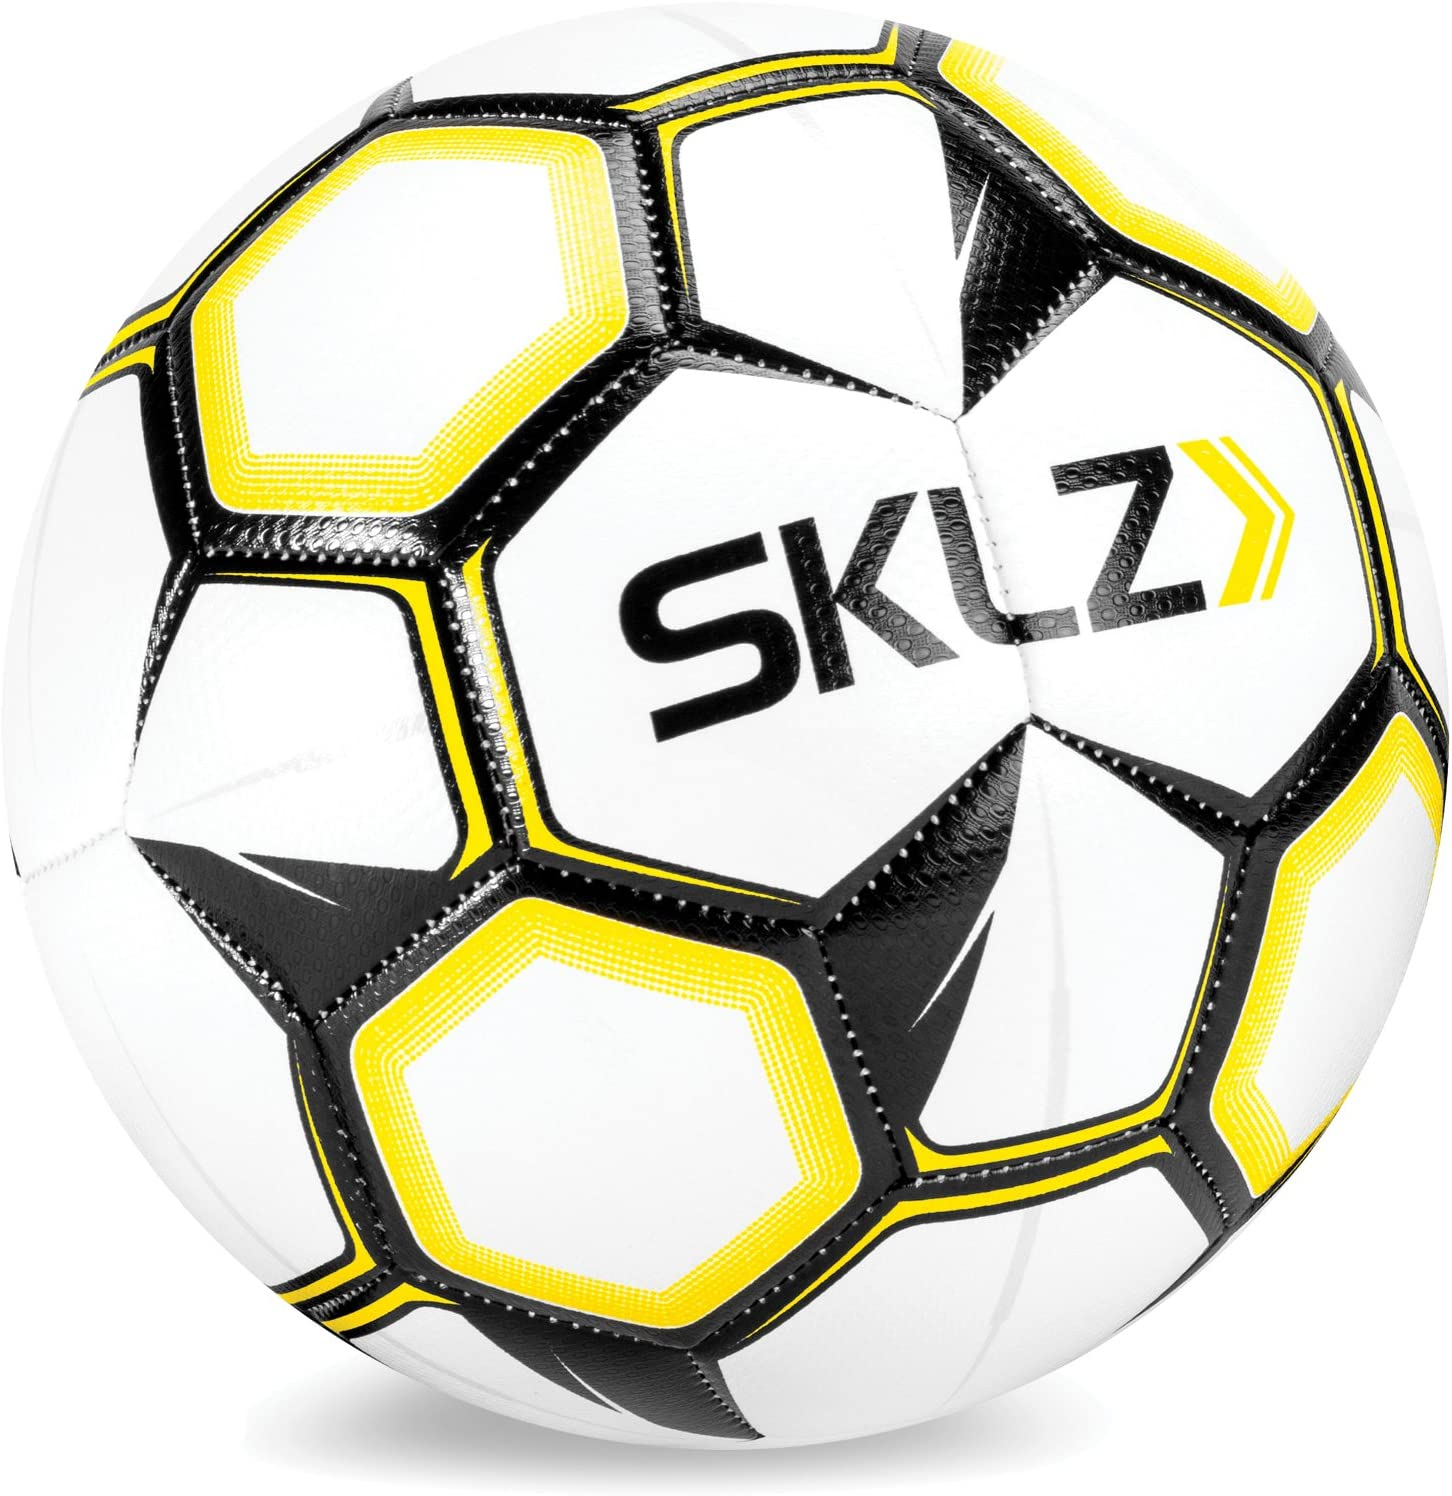 SKLZ - Balón de fútbol Unisex (Talla 5), Color Blanco: Amazon.es ...